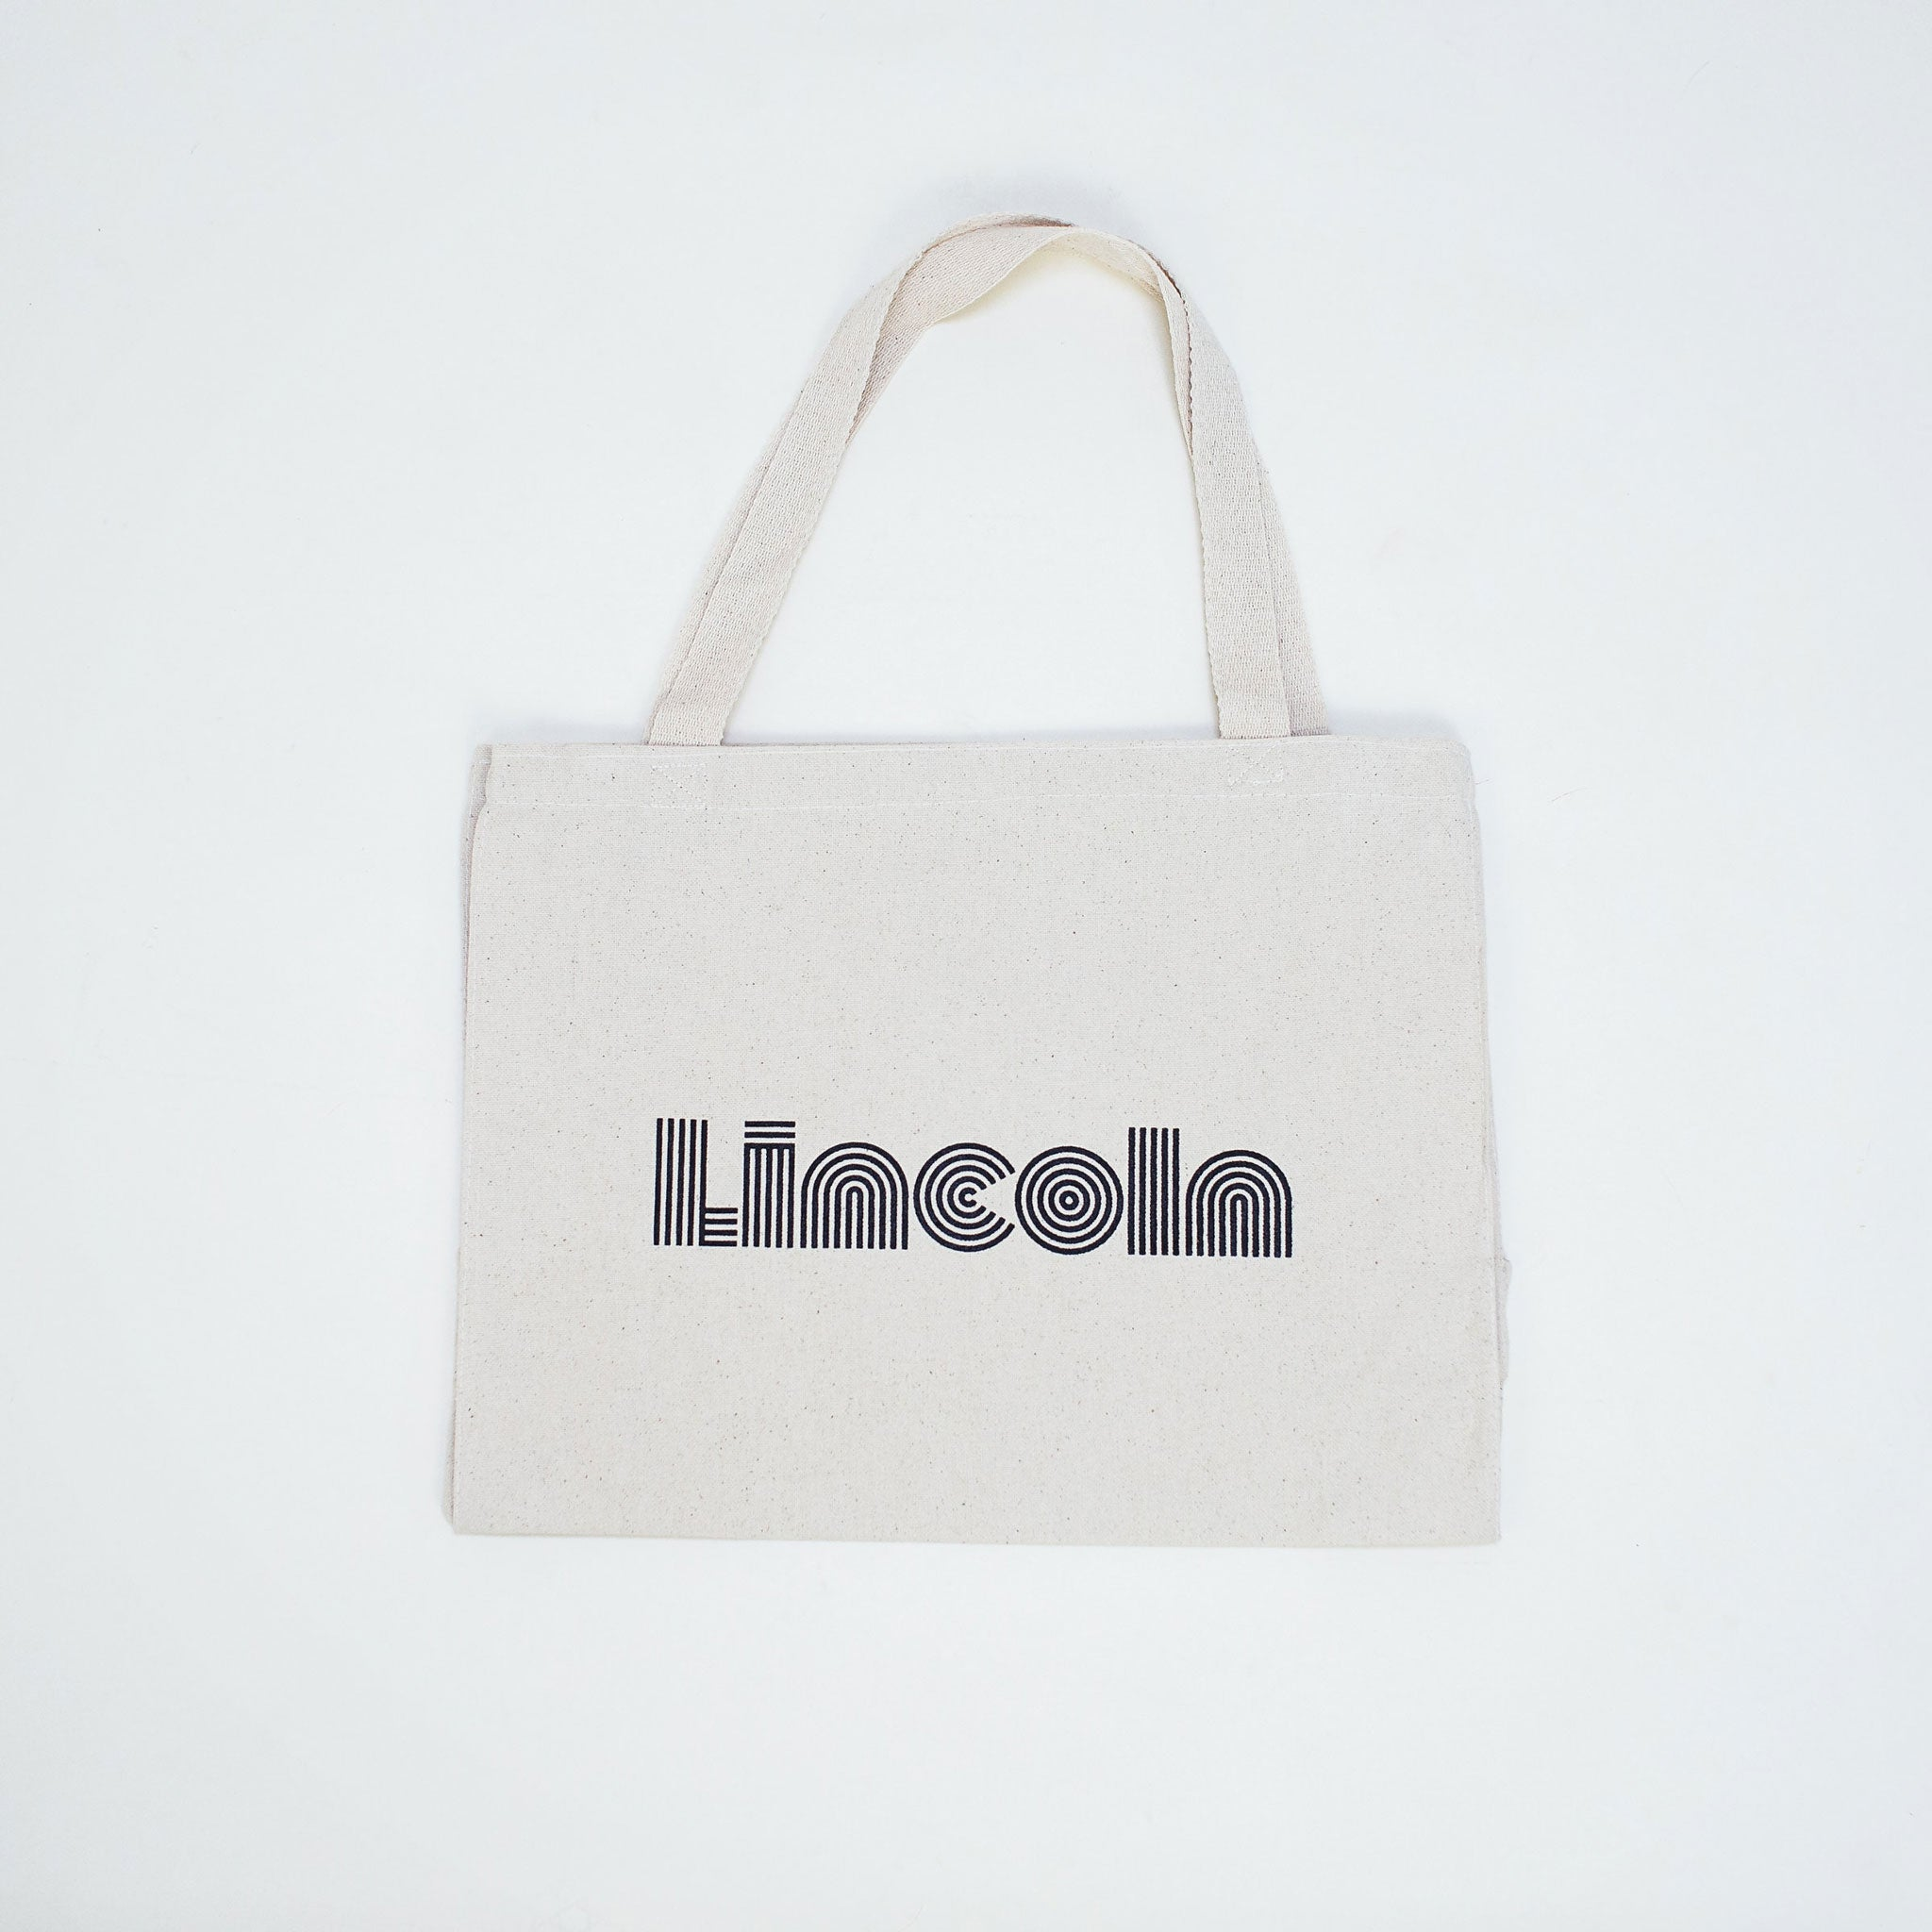 Lincoln Canvas Tote